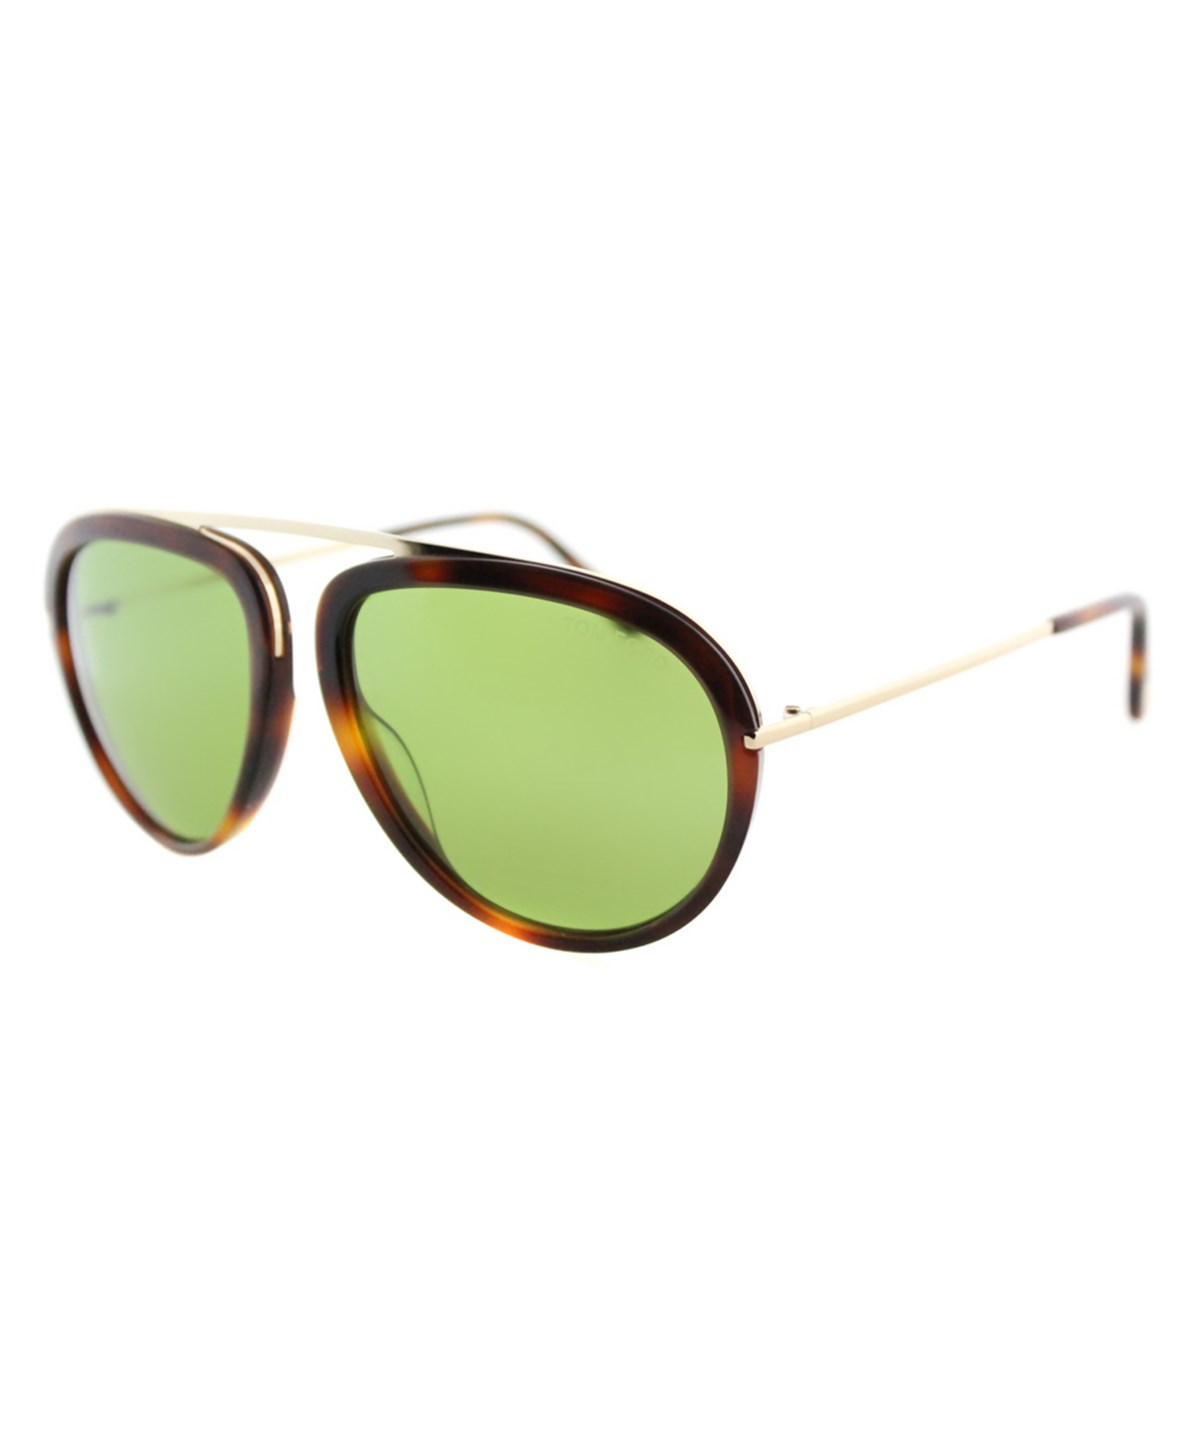 STACY PILOT PLASTIC SUNGLASSES